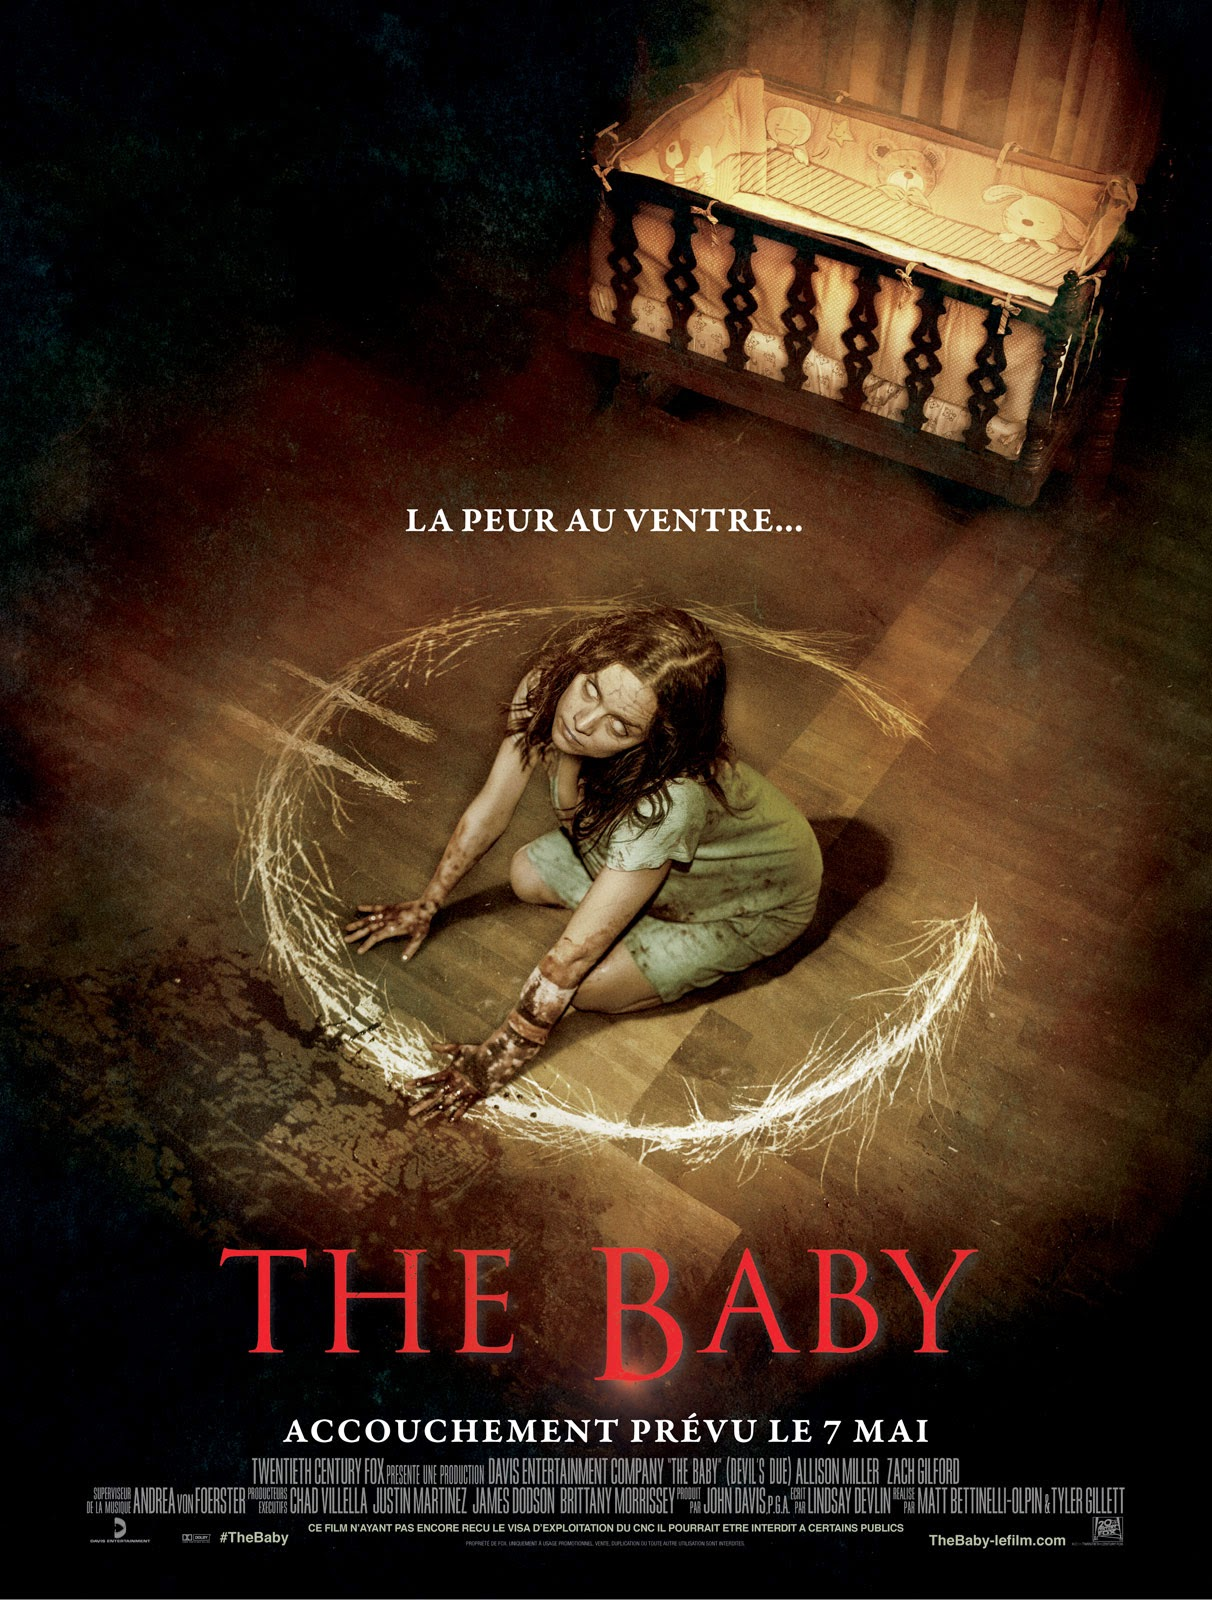 http://fuckingcinephiles.blogspot.fr/2014/05/critique-baby.html